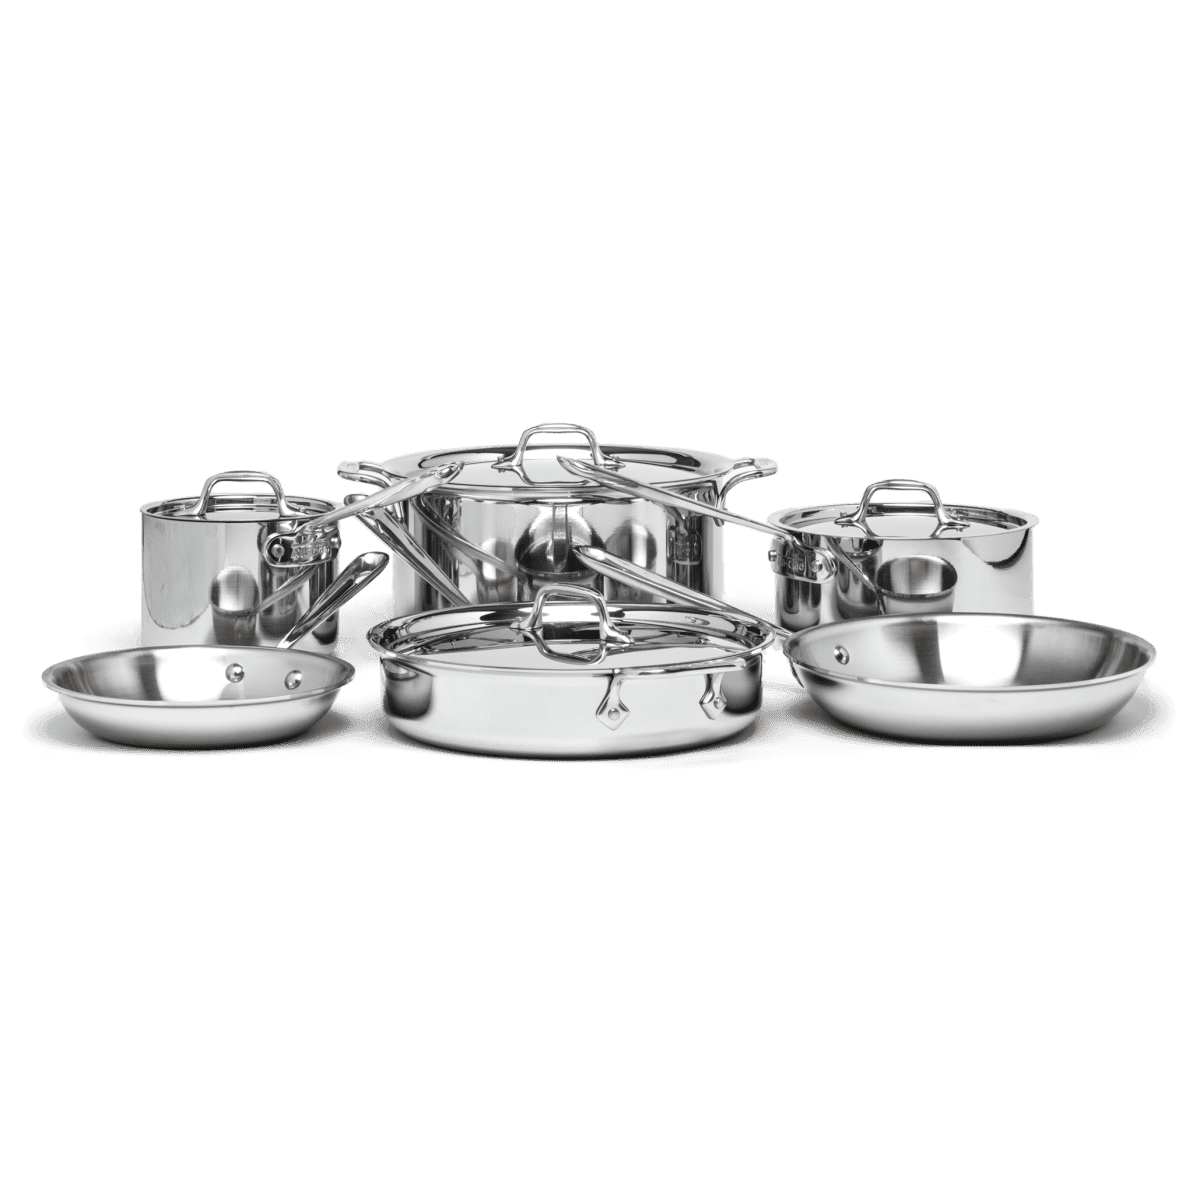 The Best Cookware Sets   Cook's Illustrated